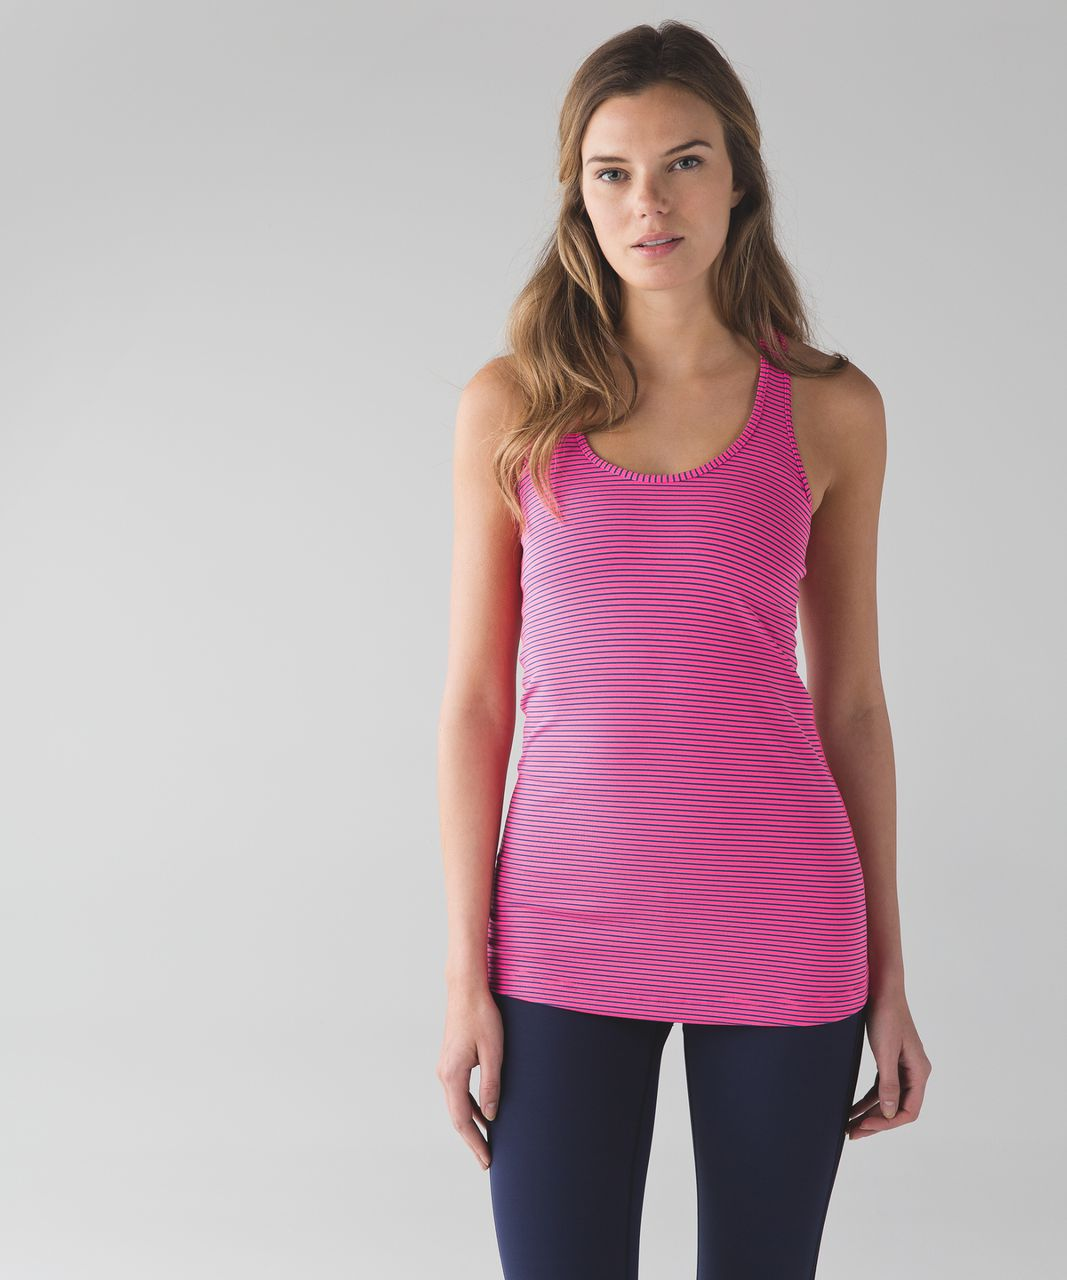 Lululemon Cool Racerback - Hyper Stripe Neon Pink Rugged Blue